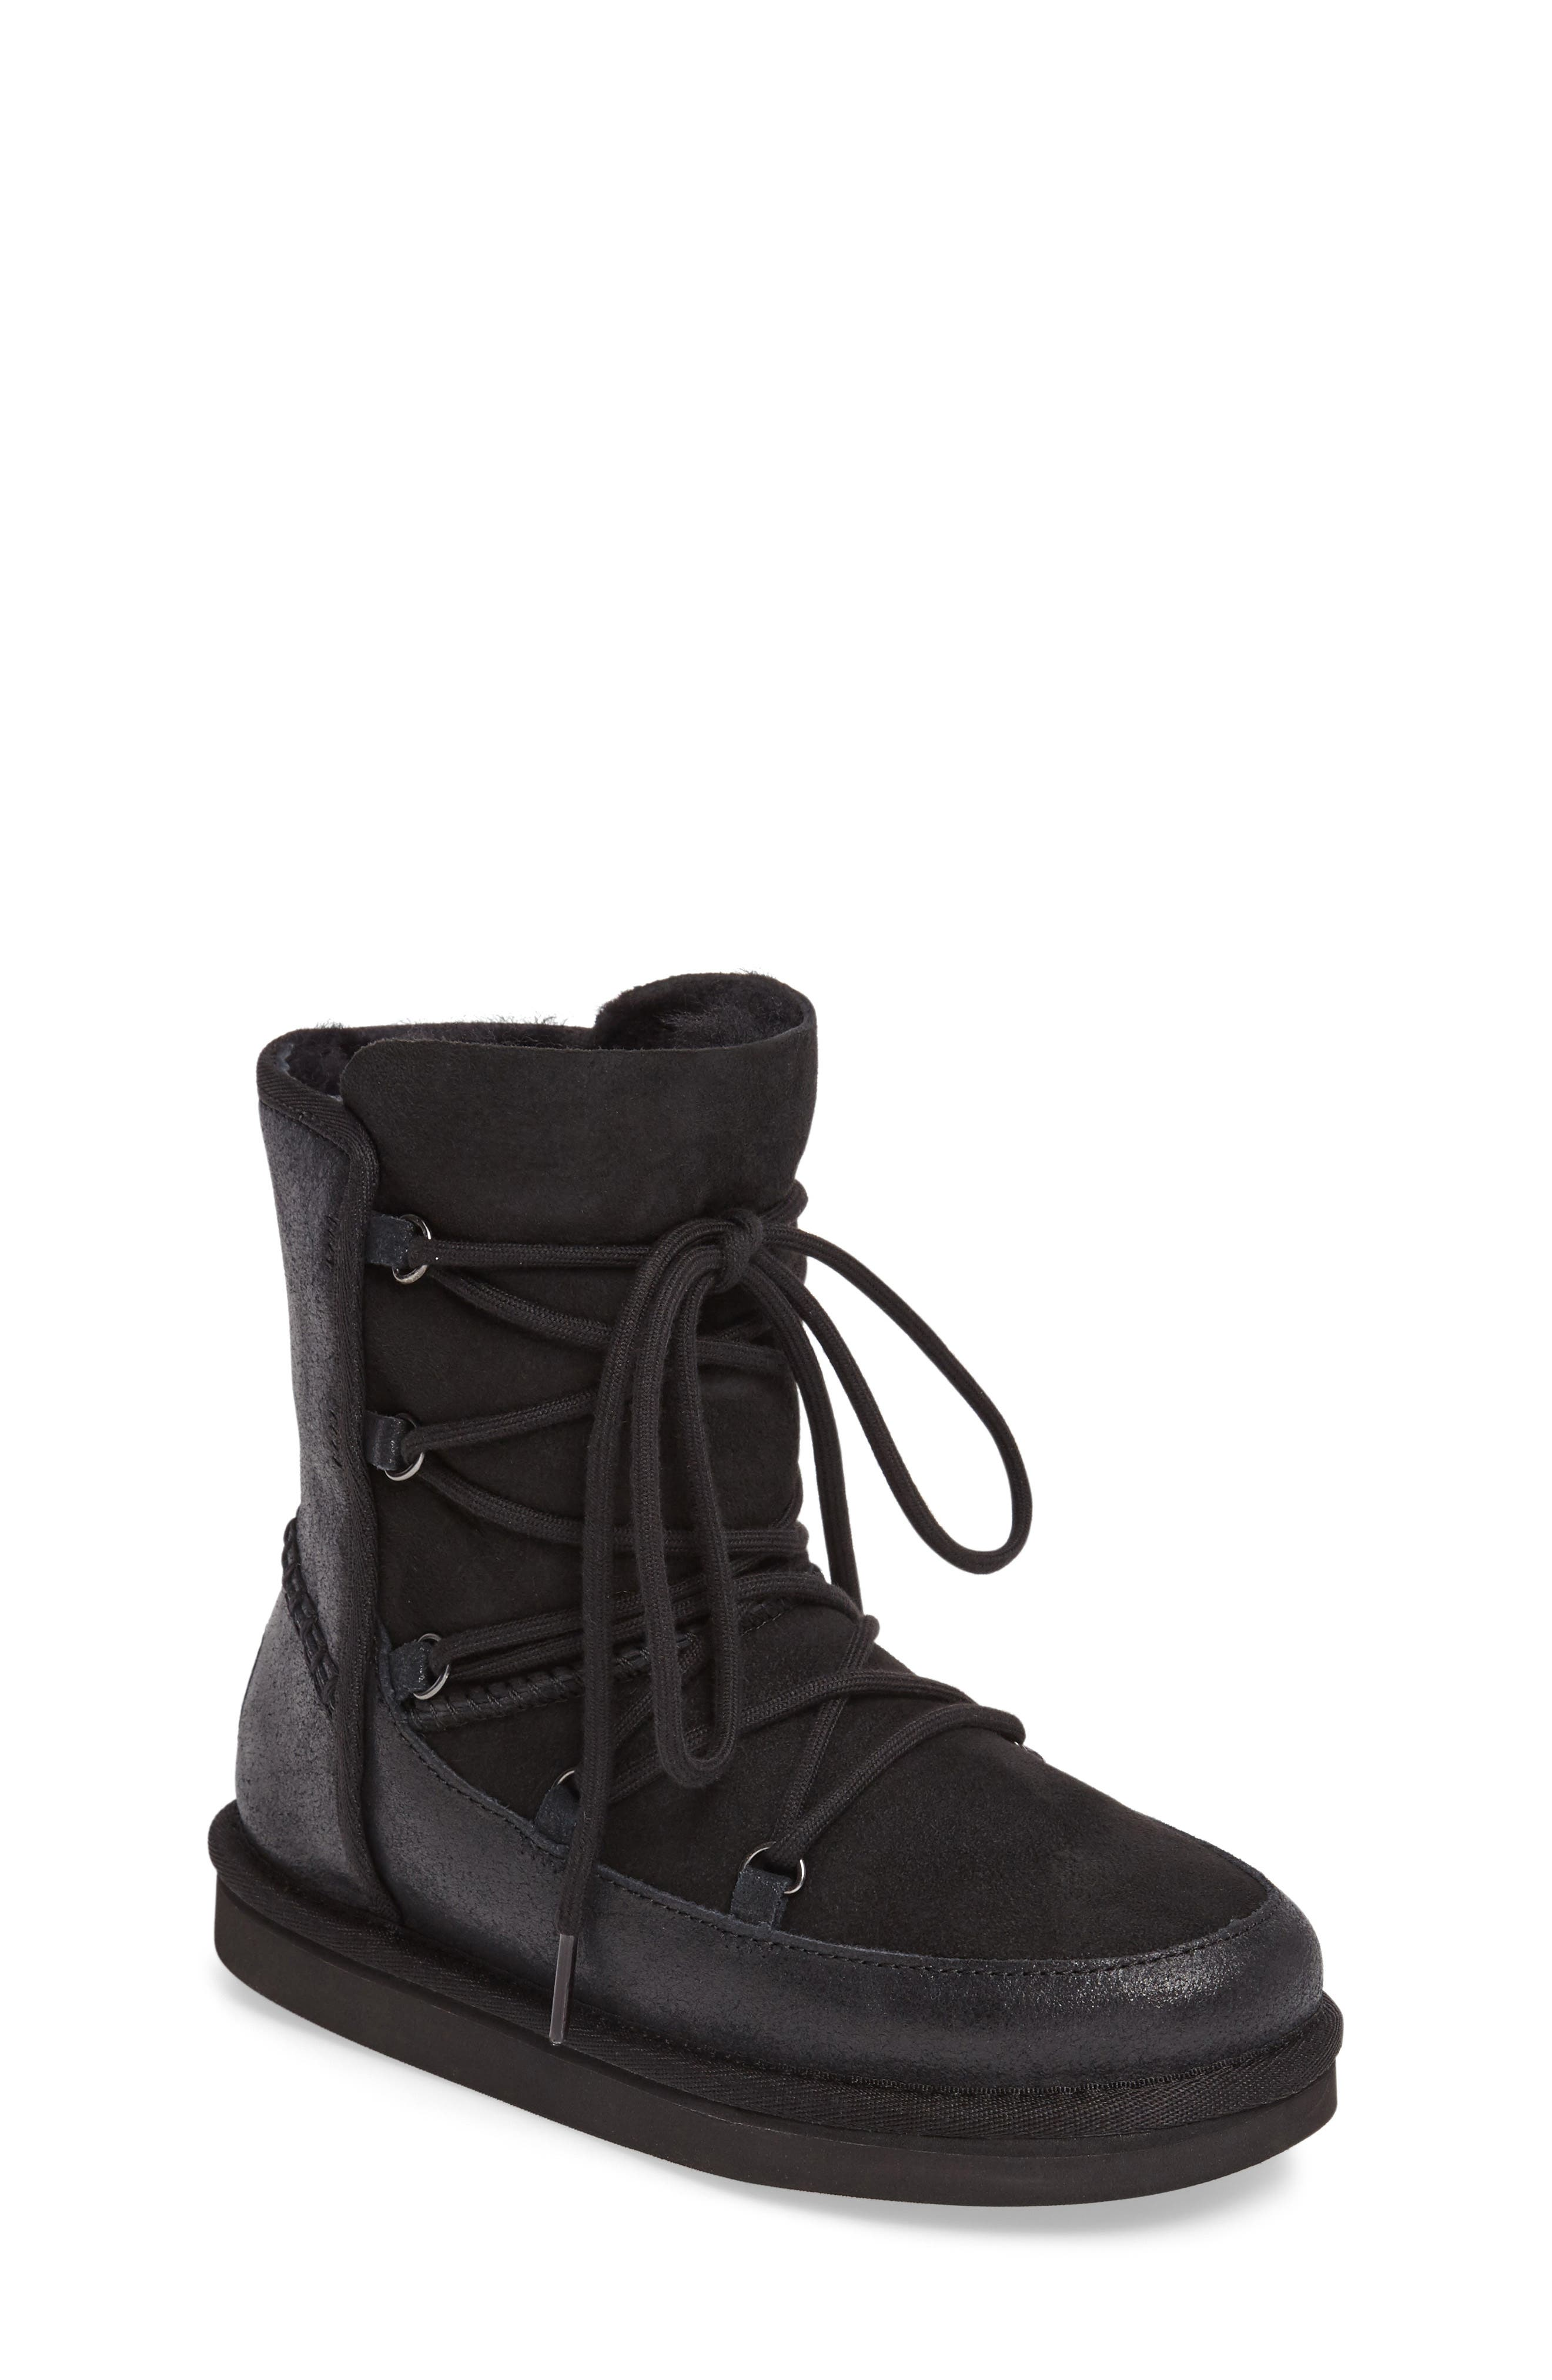 Eliss Water Resistant Suede Boot,                         Main,                         color, 001